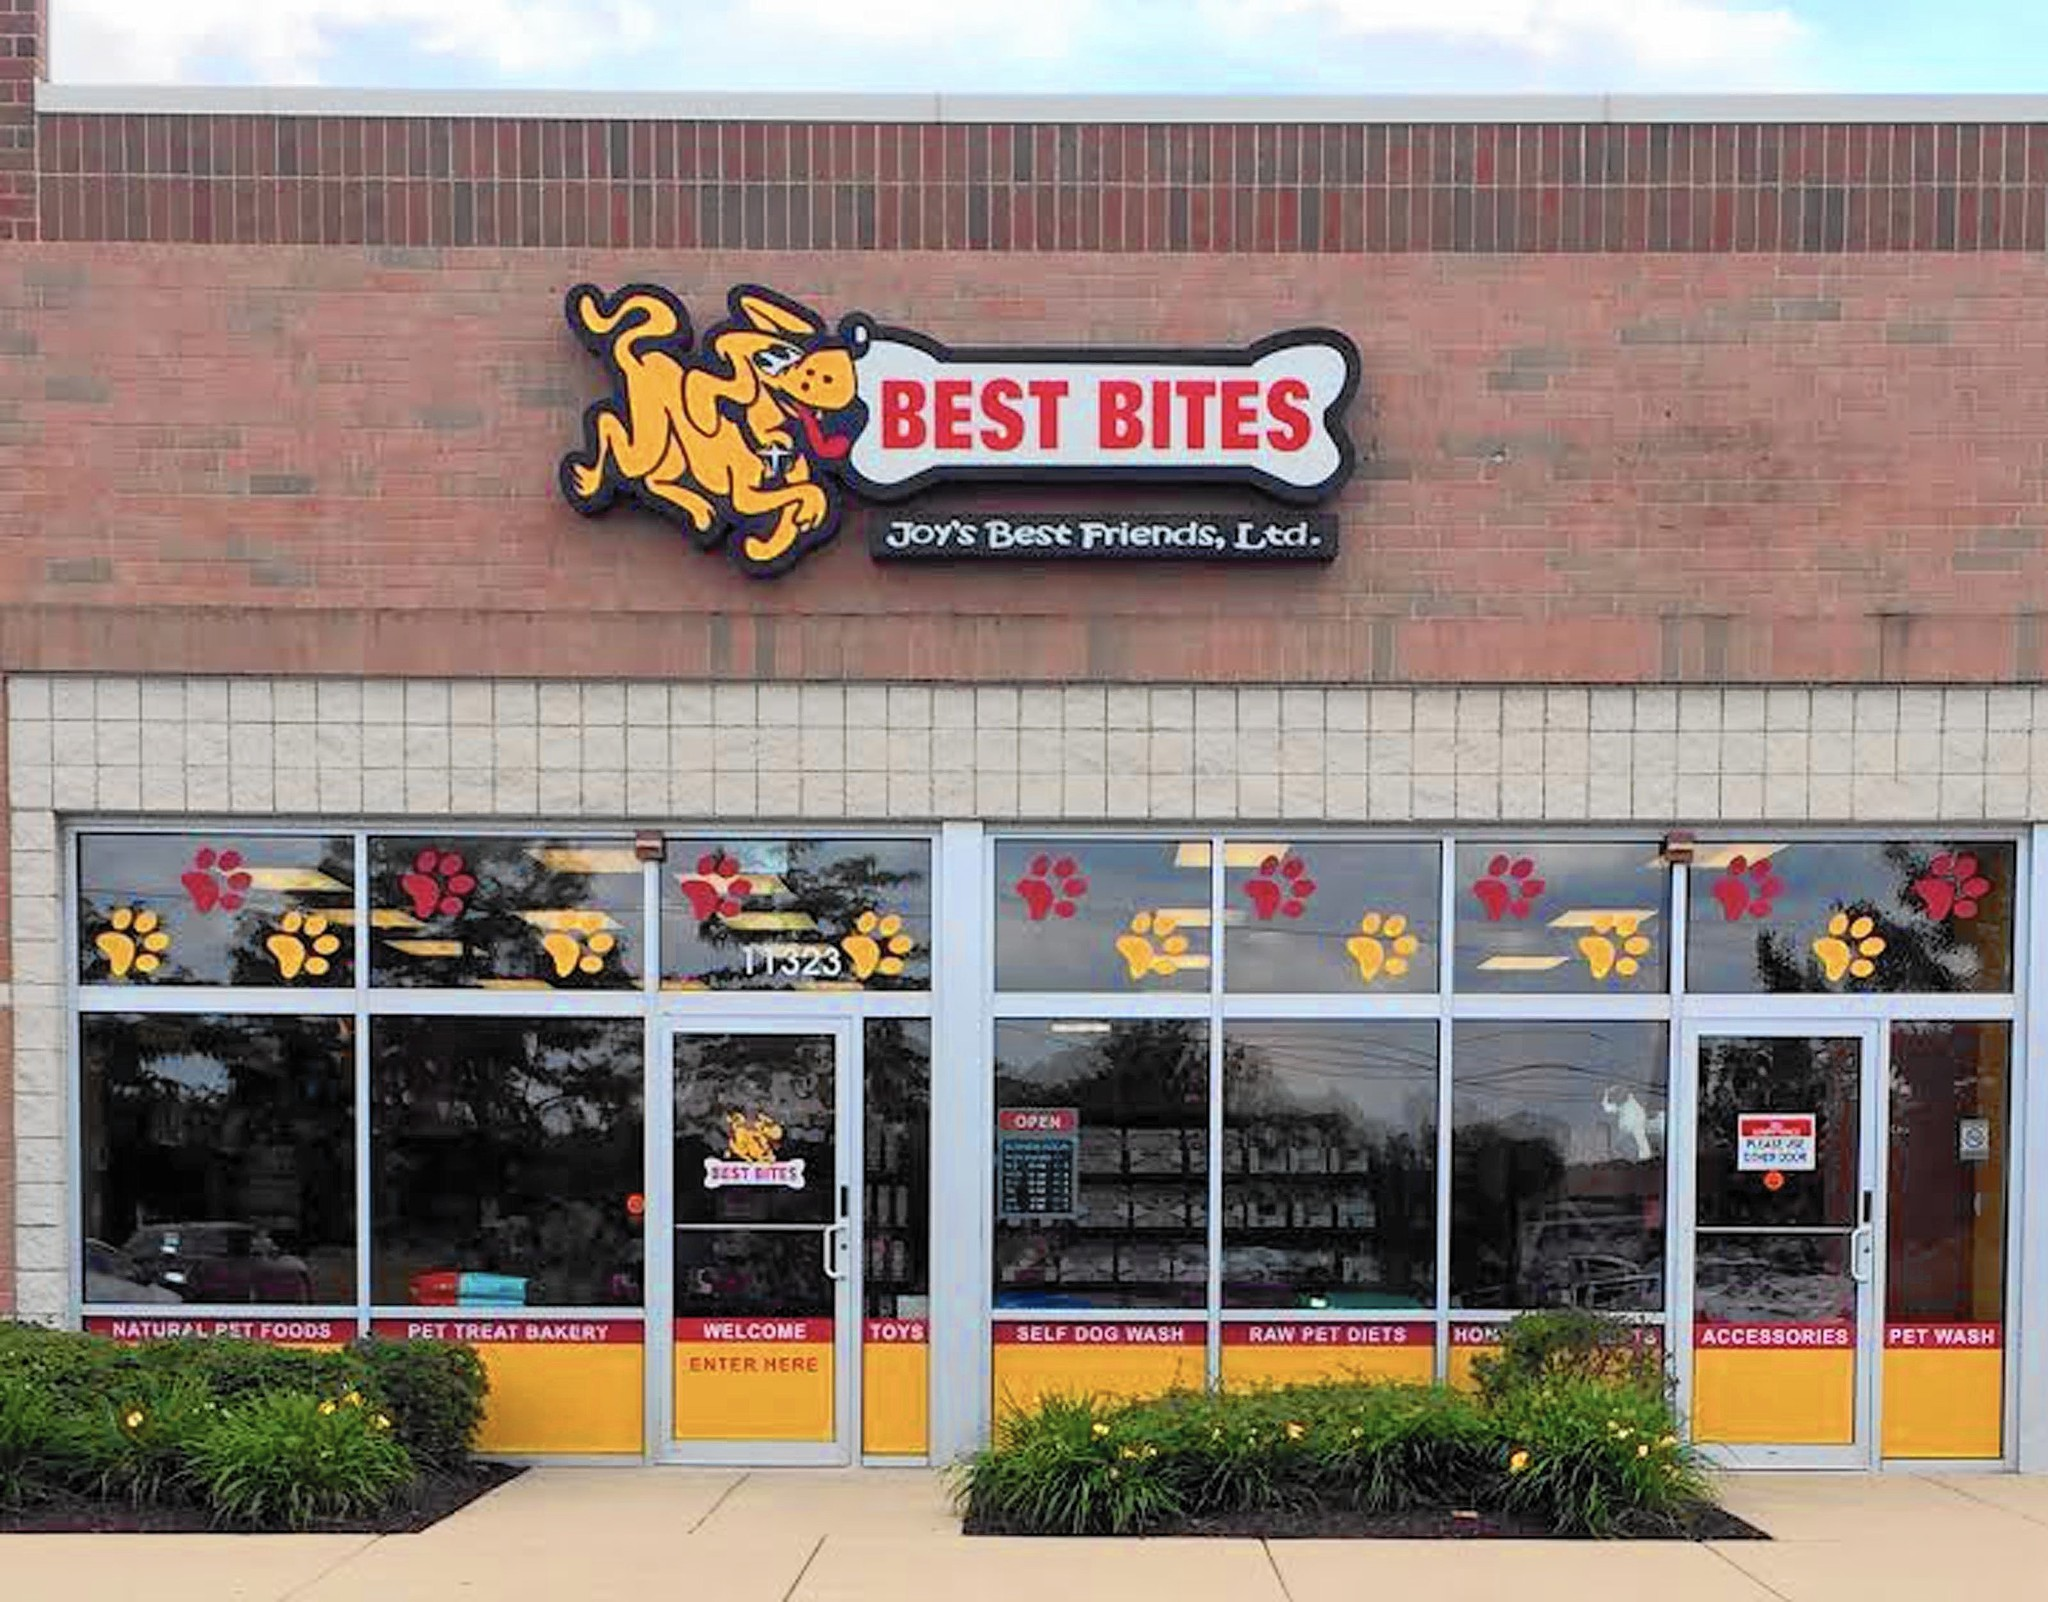 Comings and goings store for pets moves to orland park opens treat comings and goings store for pets moves to orland park opens treat bakery daily southtown solutioingenieria Image collections